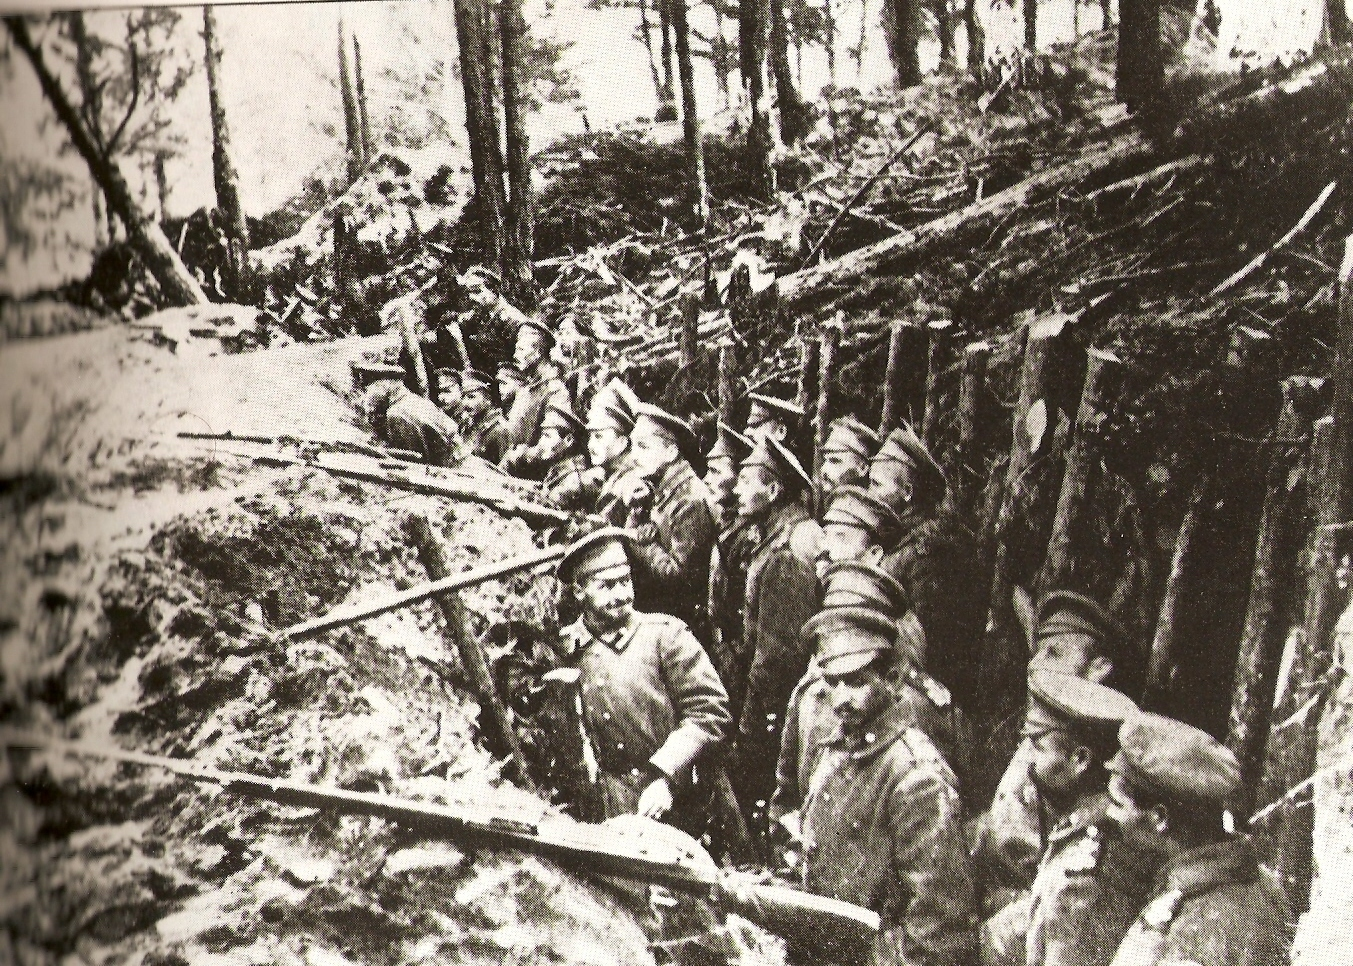 Russian trenches in the forests of Sarikamish | Wikimedia